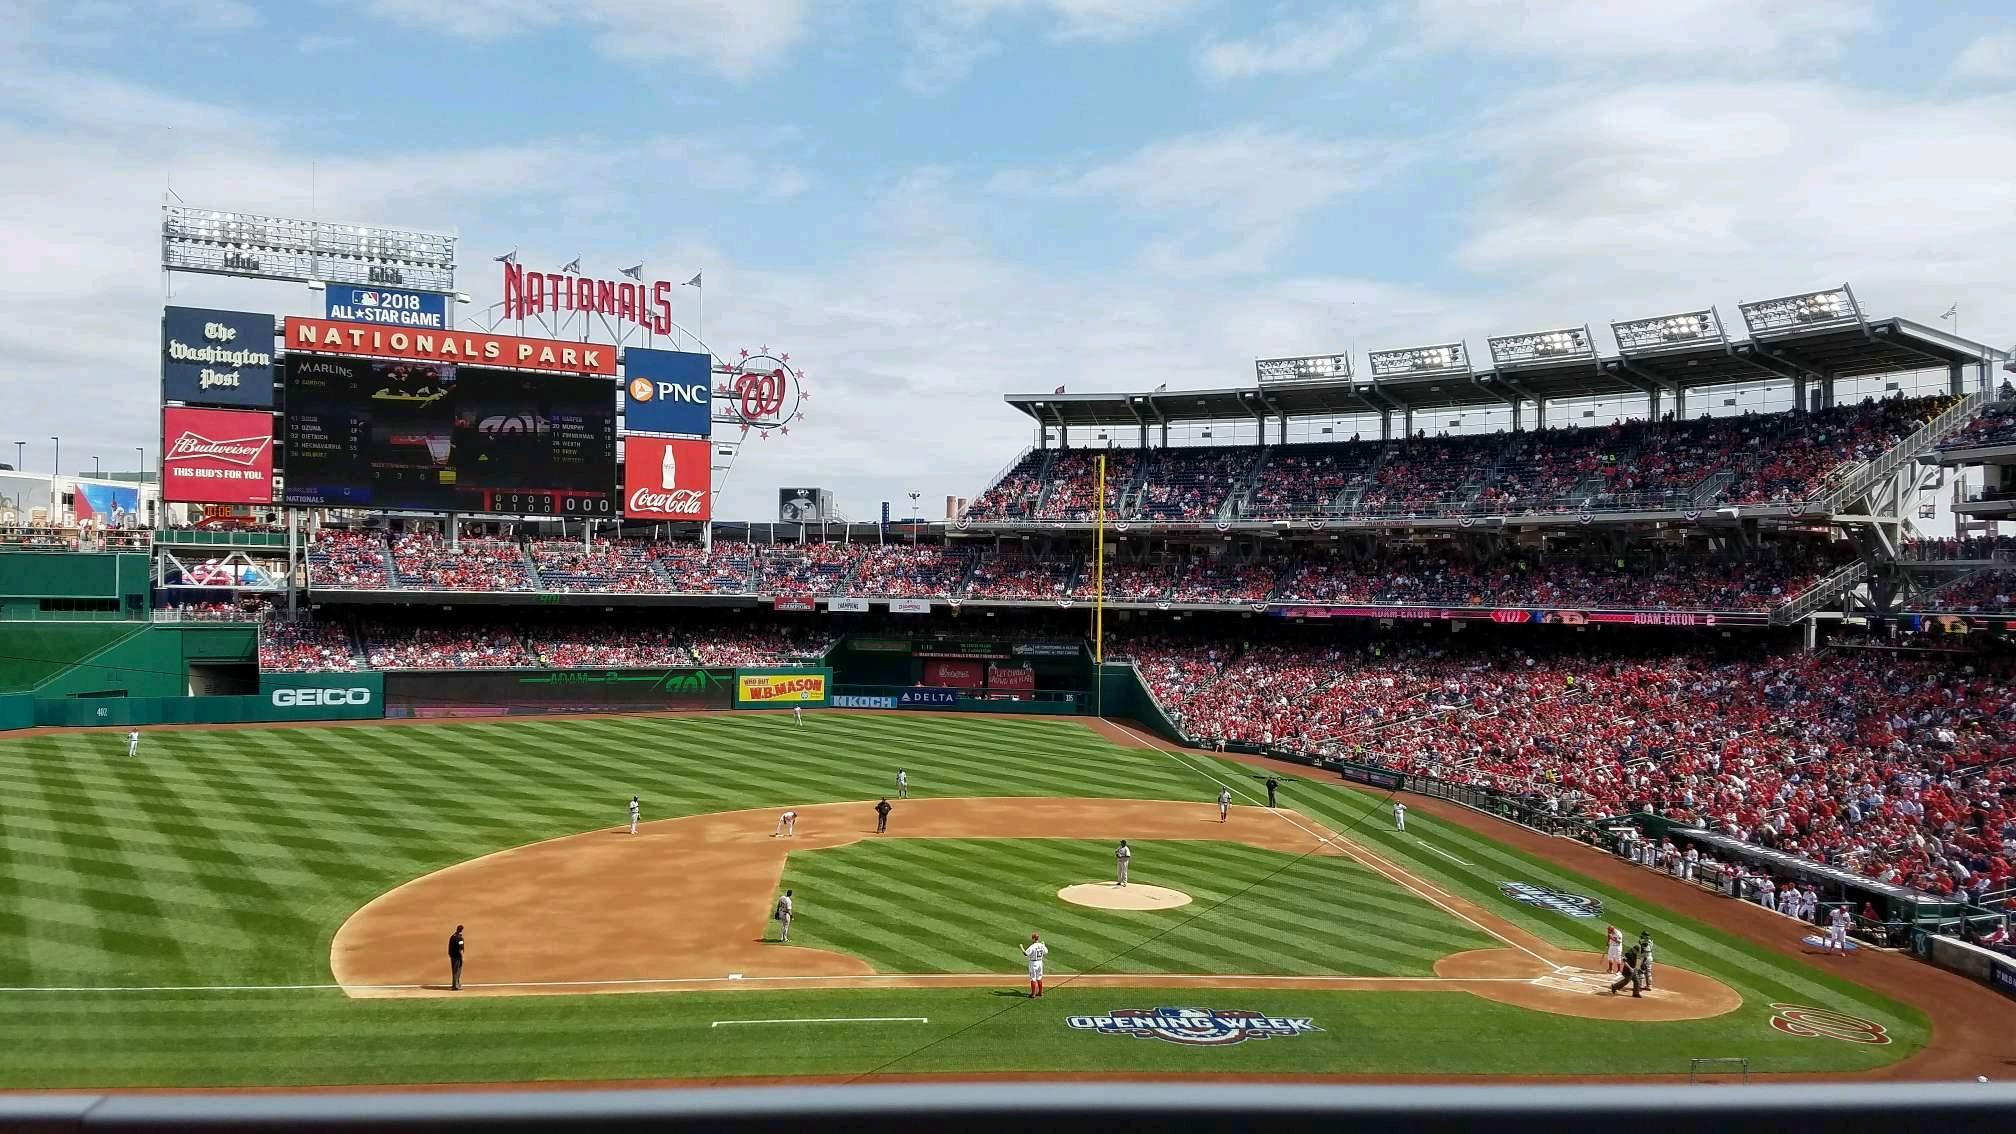 Nationals Park Section 208 Row A Seat 7